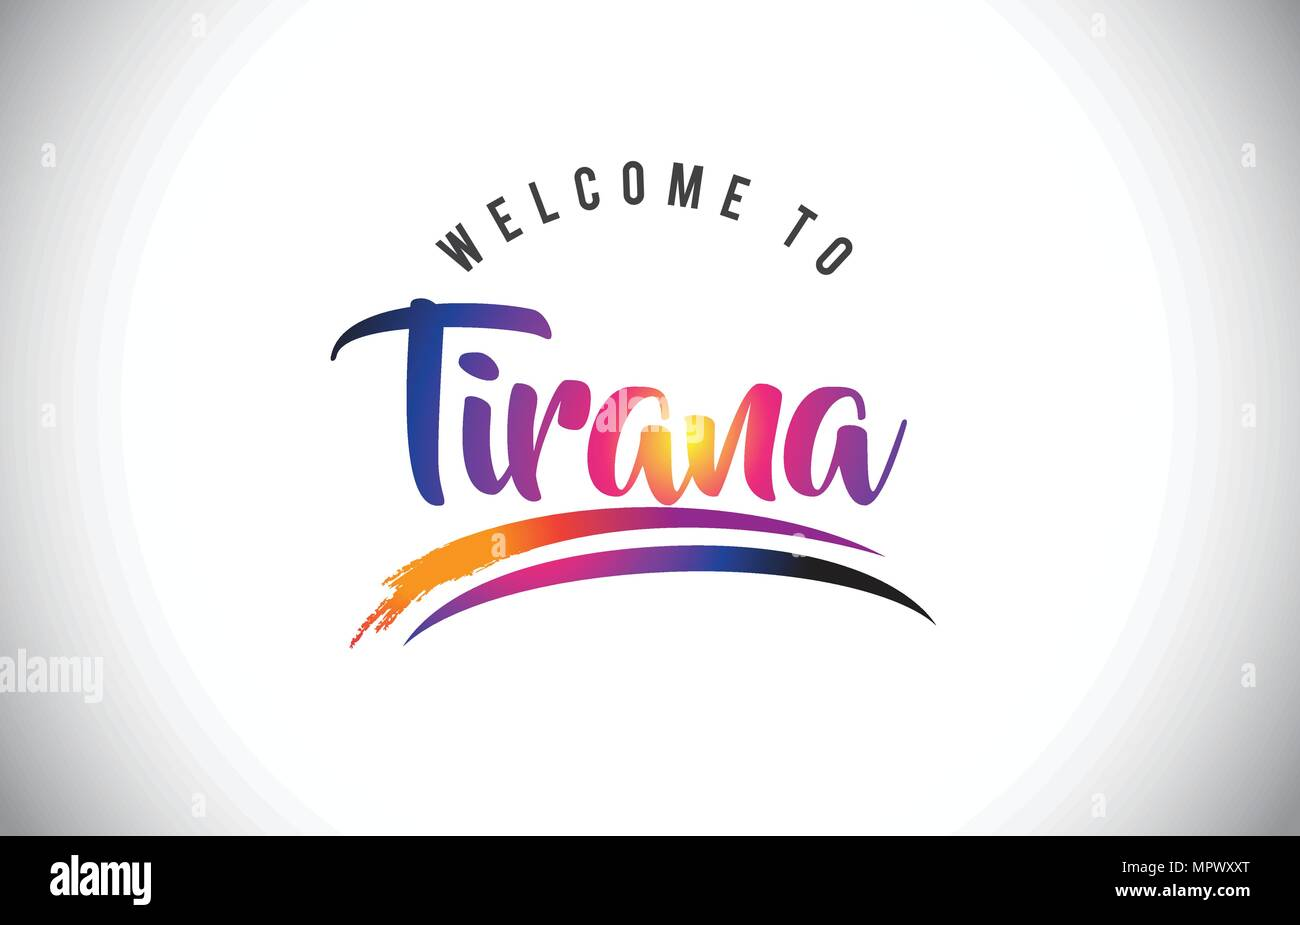 Tirana Welcome To Message in Purple Vibrant Modern Colors Vector Illustration. - Stock Vector